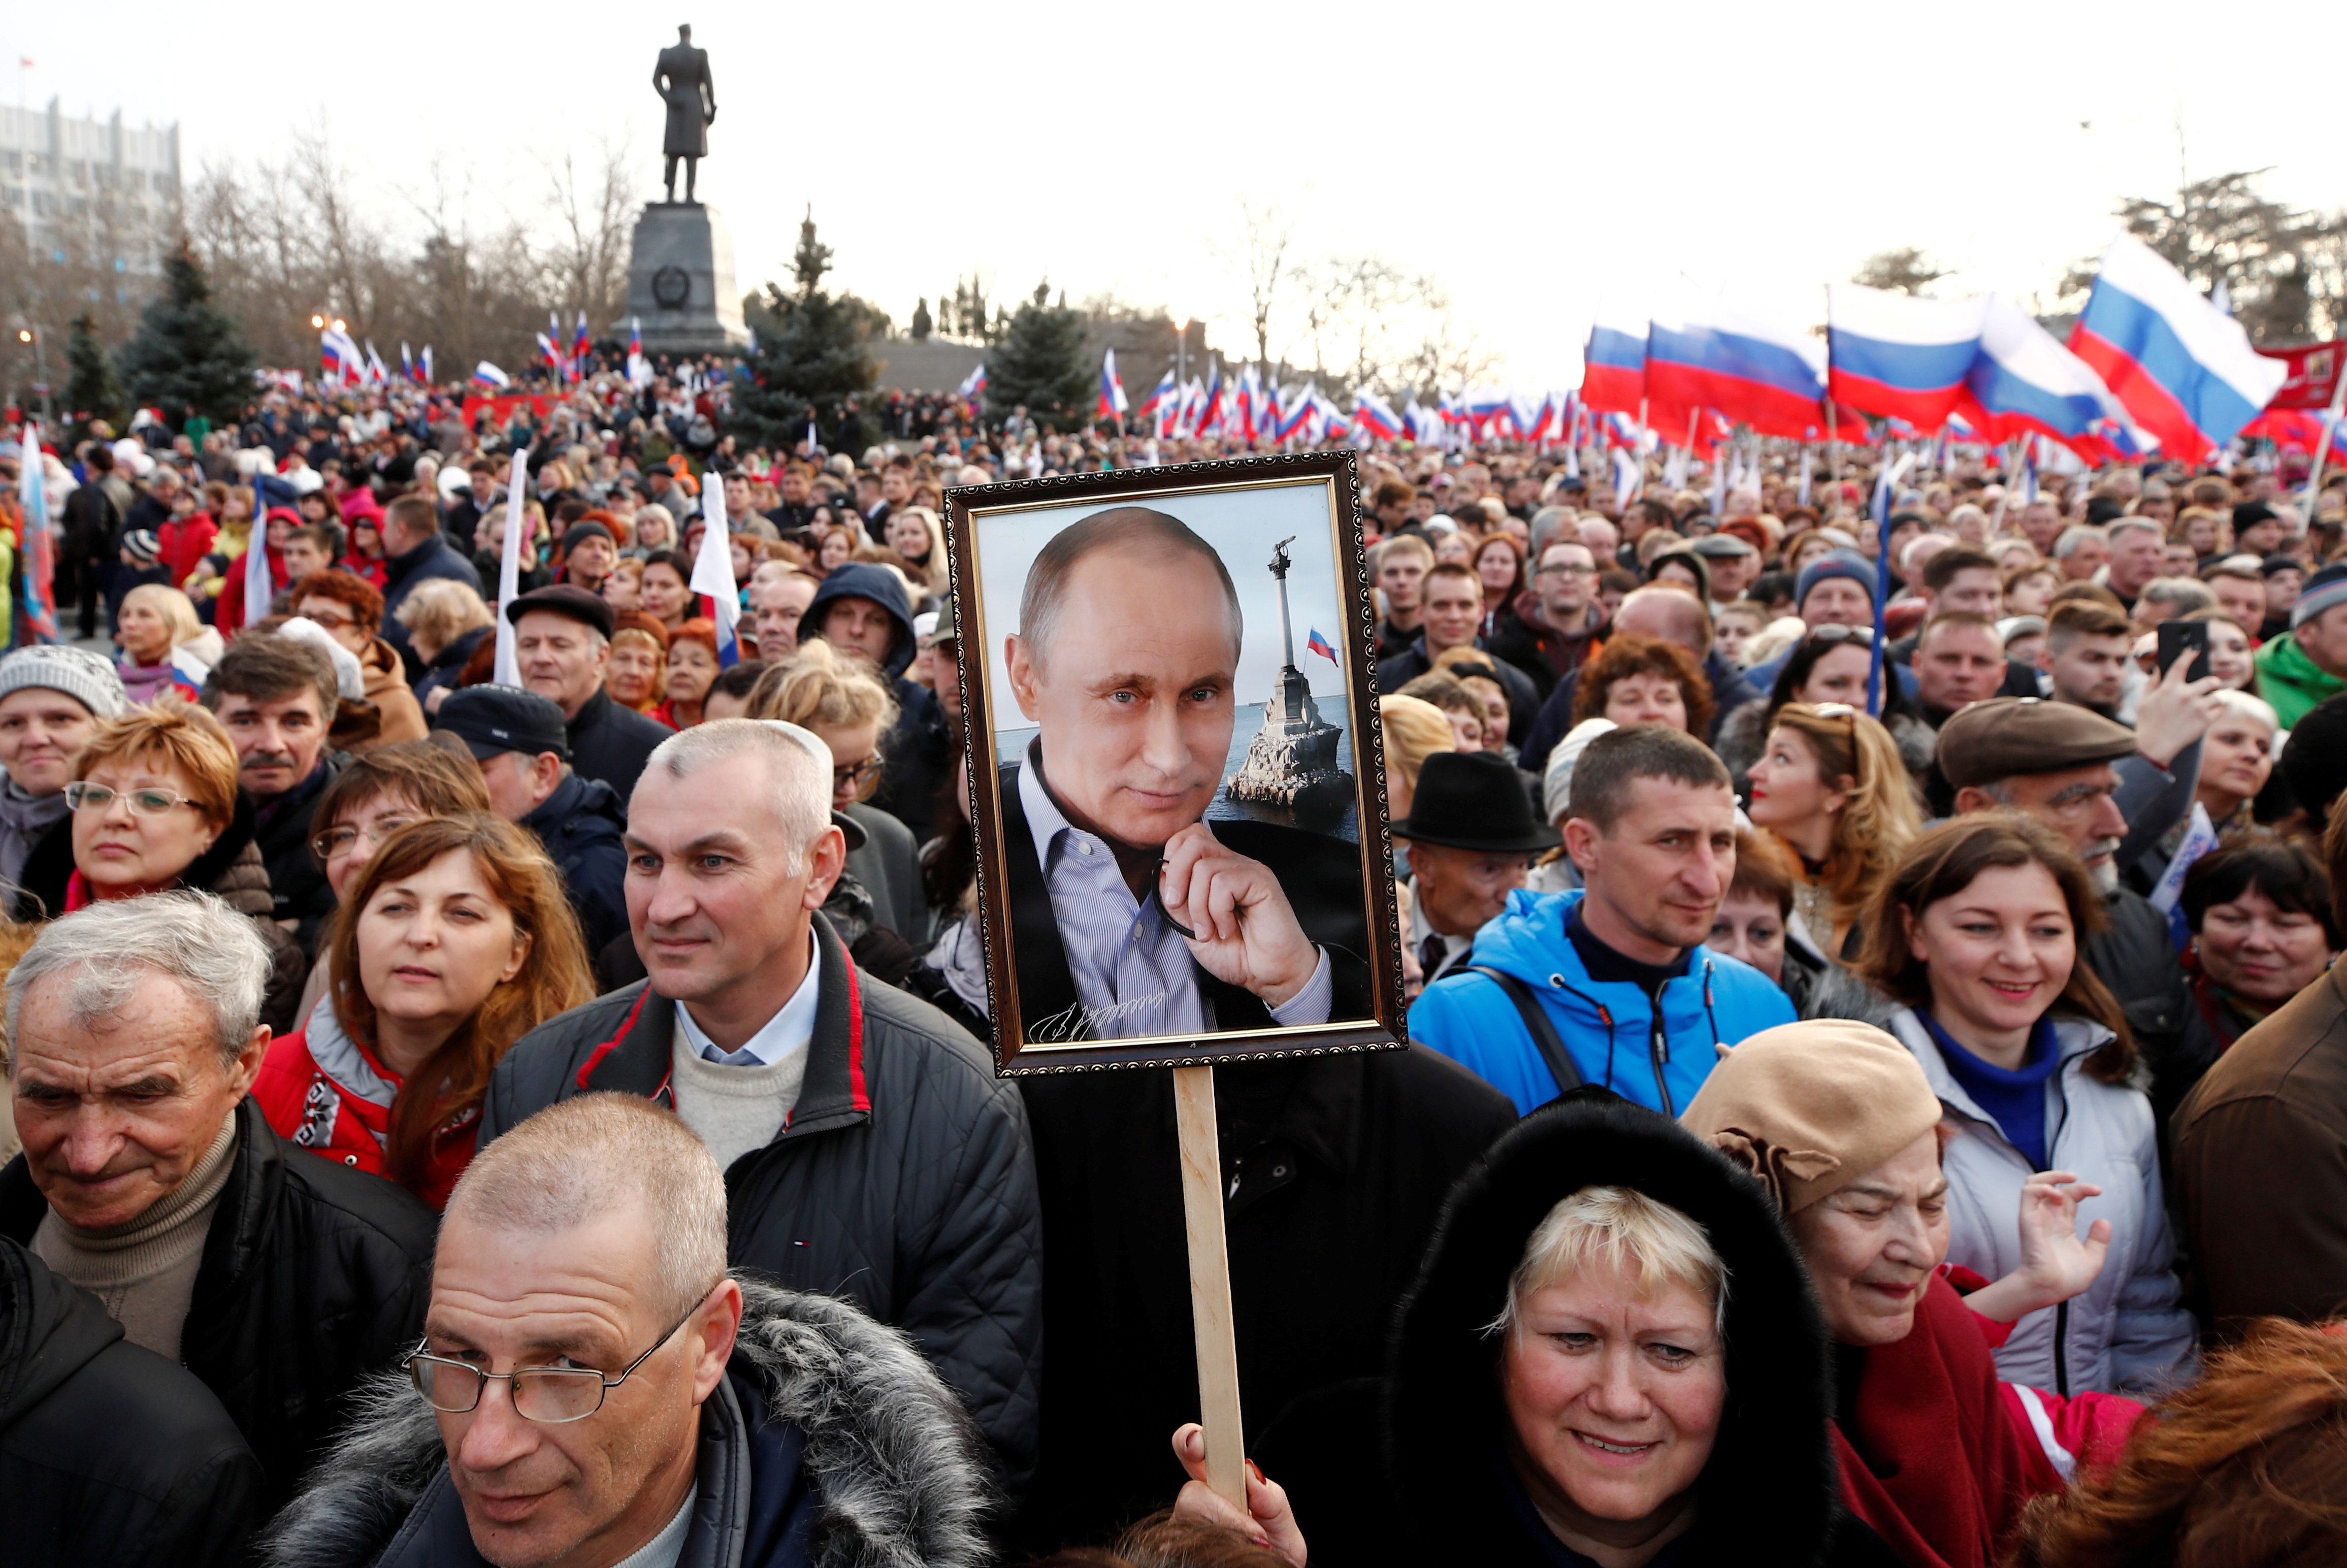 What We're Watching: Russians let Putin stay, Syria donors pledge, US & China battle over tech